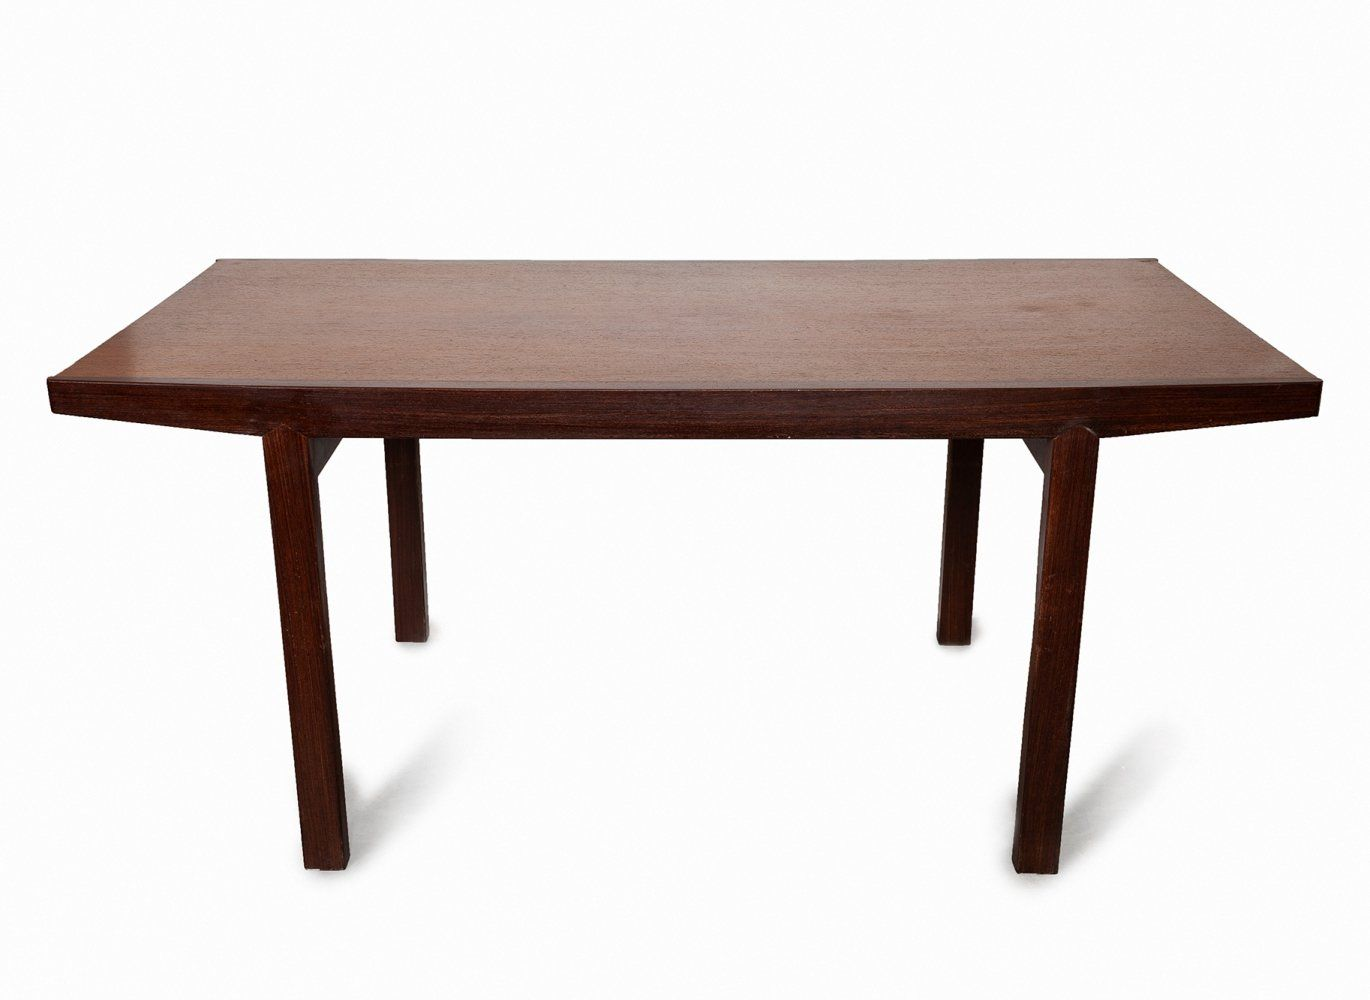 For Sale Danish Design Dining Table In Solid Wenge Teak 1960s Dining Table Danish Design Wooden Chair Plans